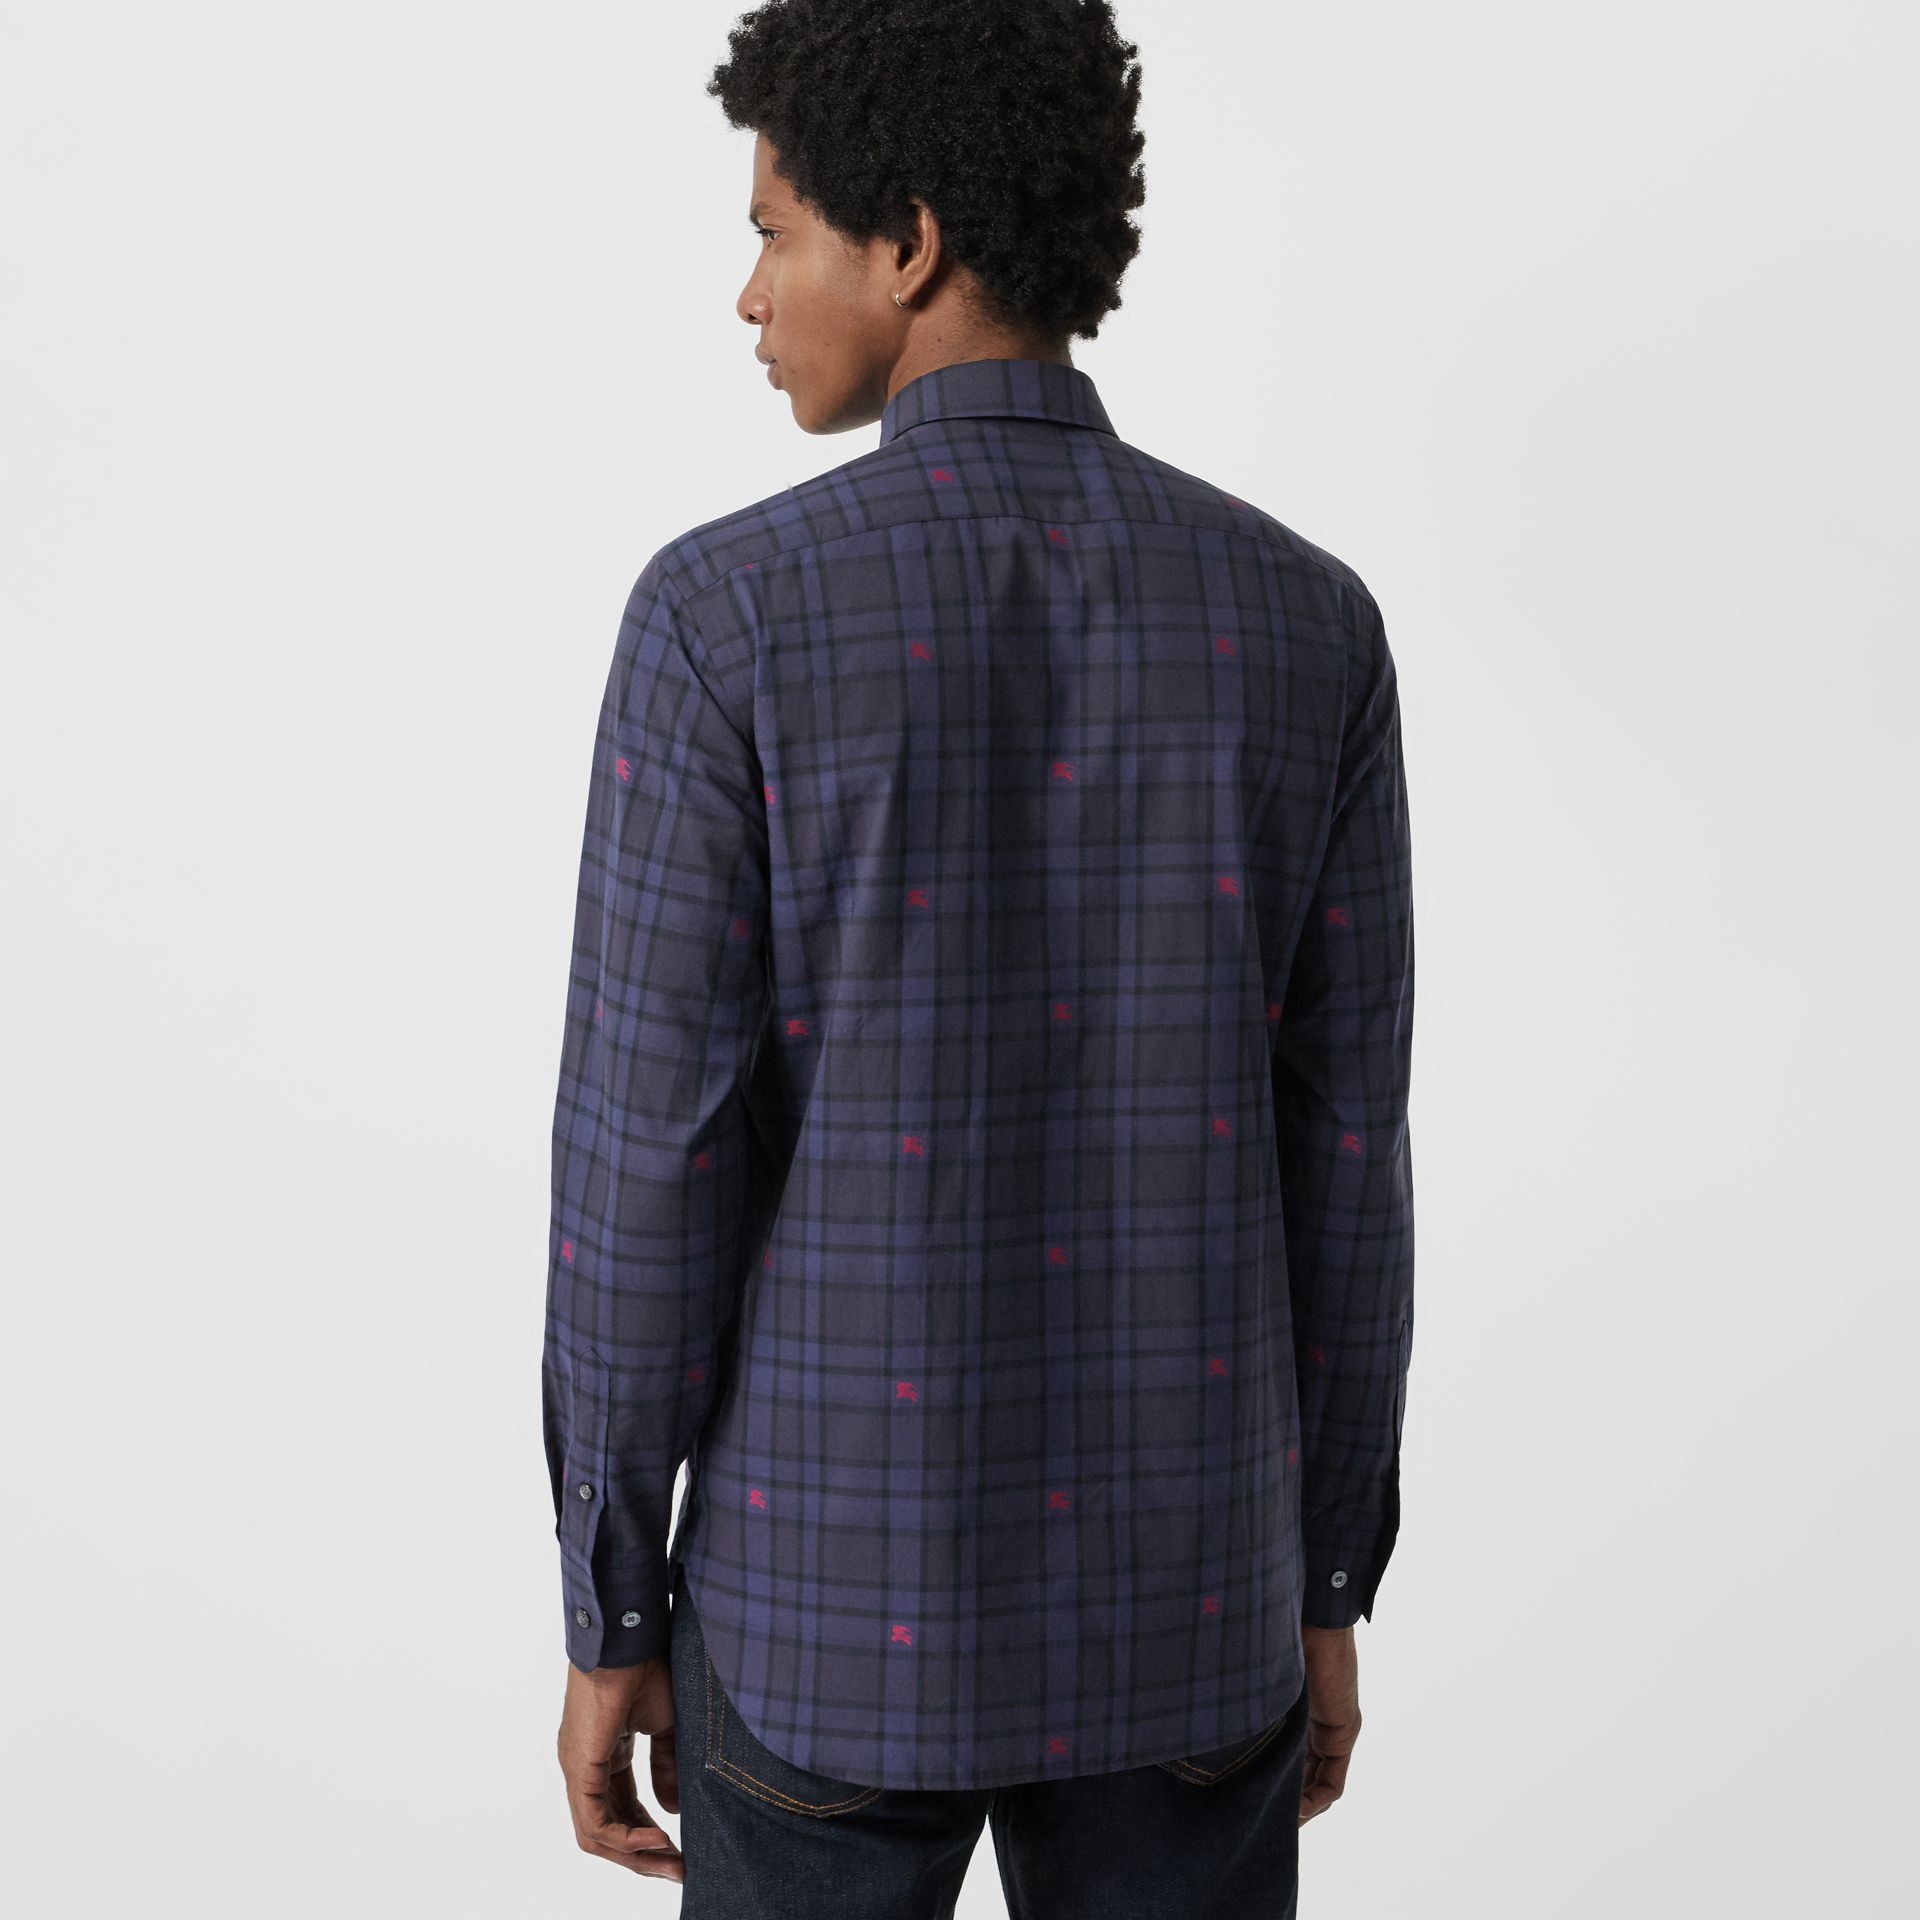 Equestrian Knight Check Cotton Shirt in Dark Indigo - Men | Burberry United States - gallery image 2